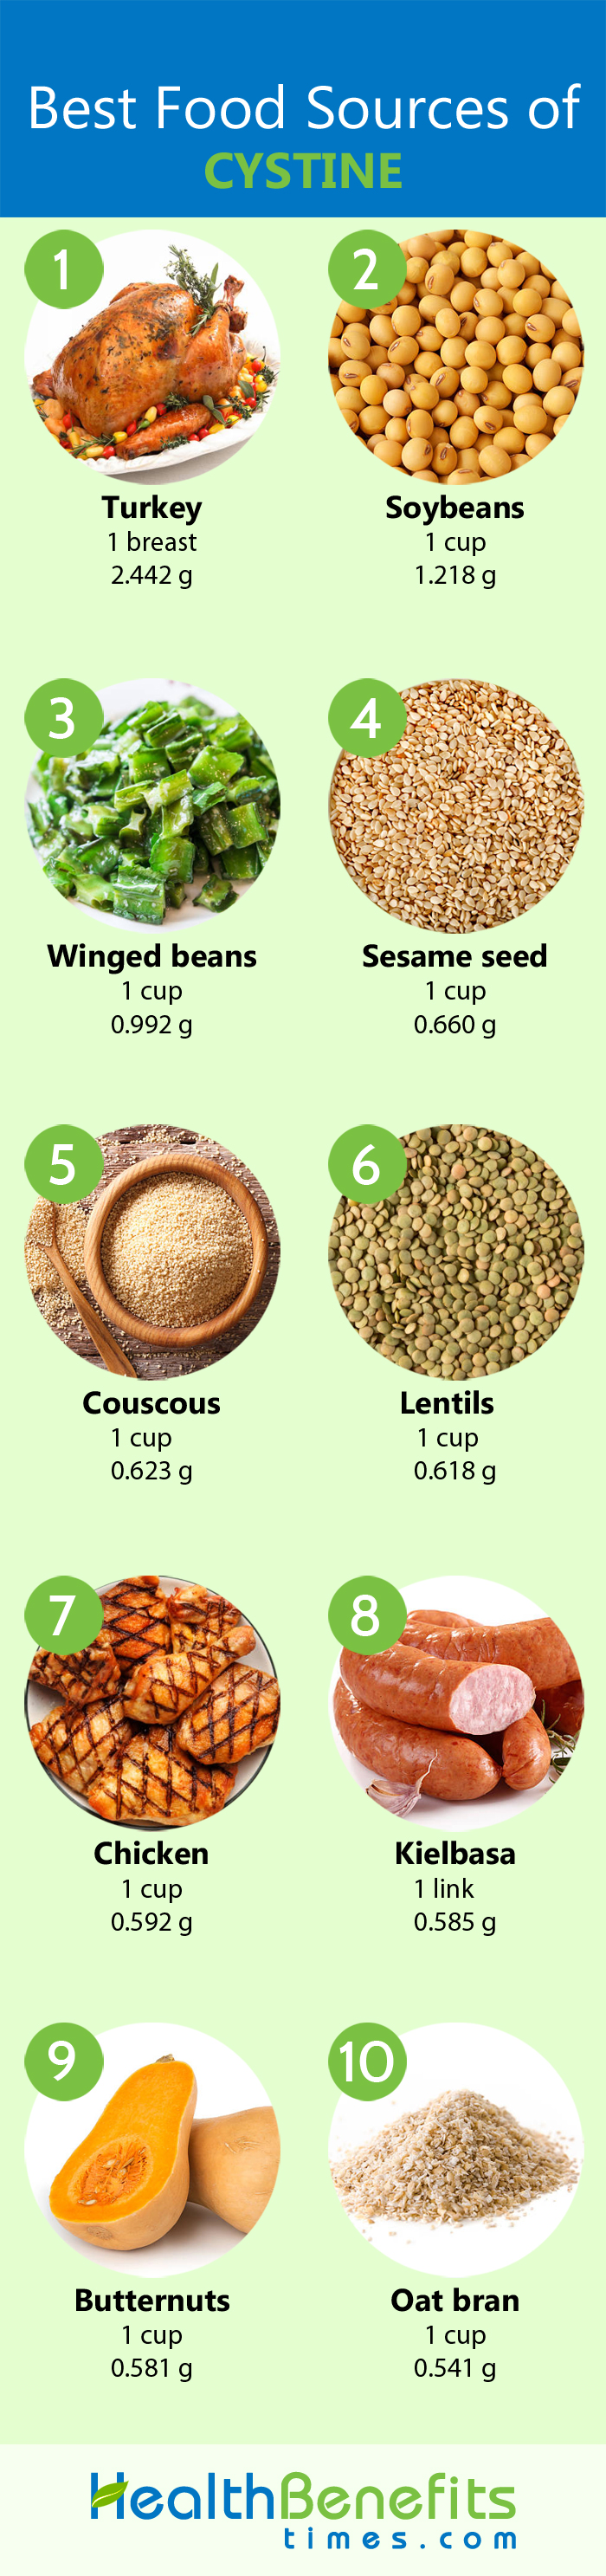 Cystine Facts and Health Benefits | Nutrition